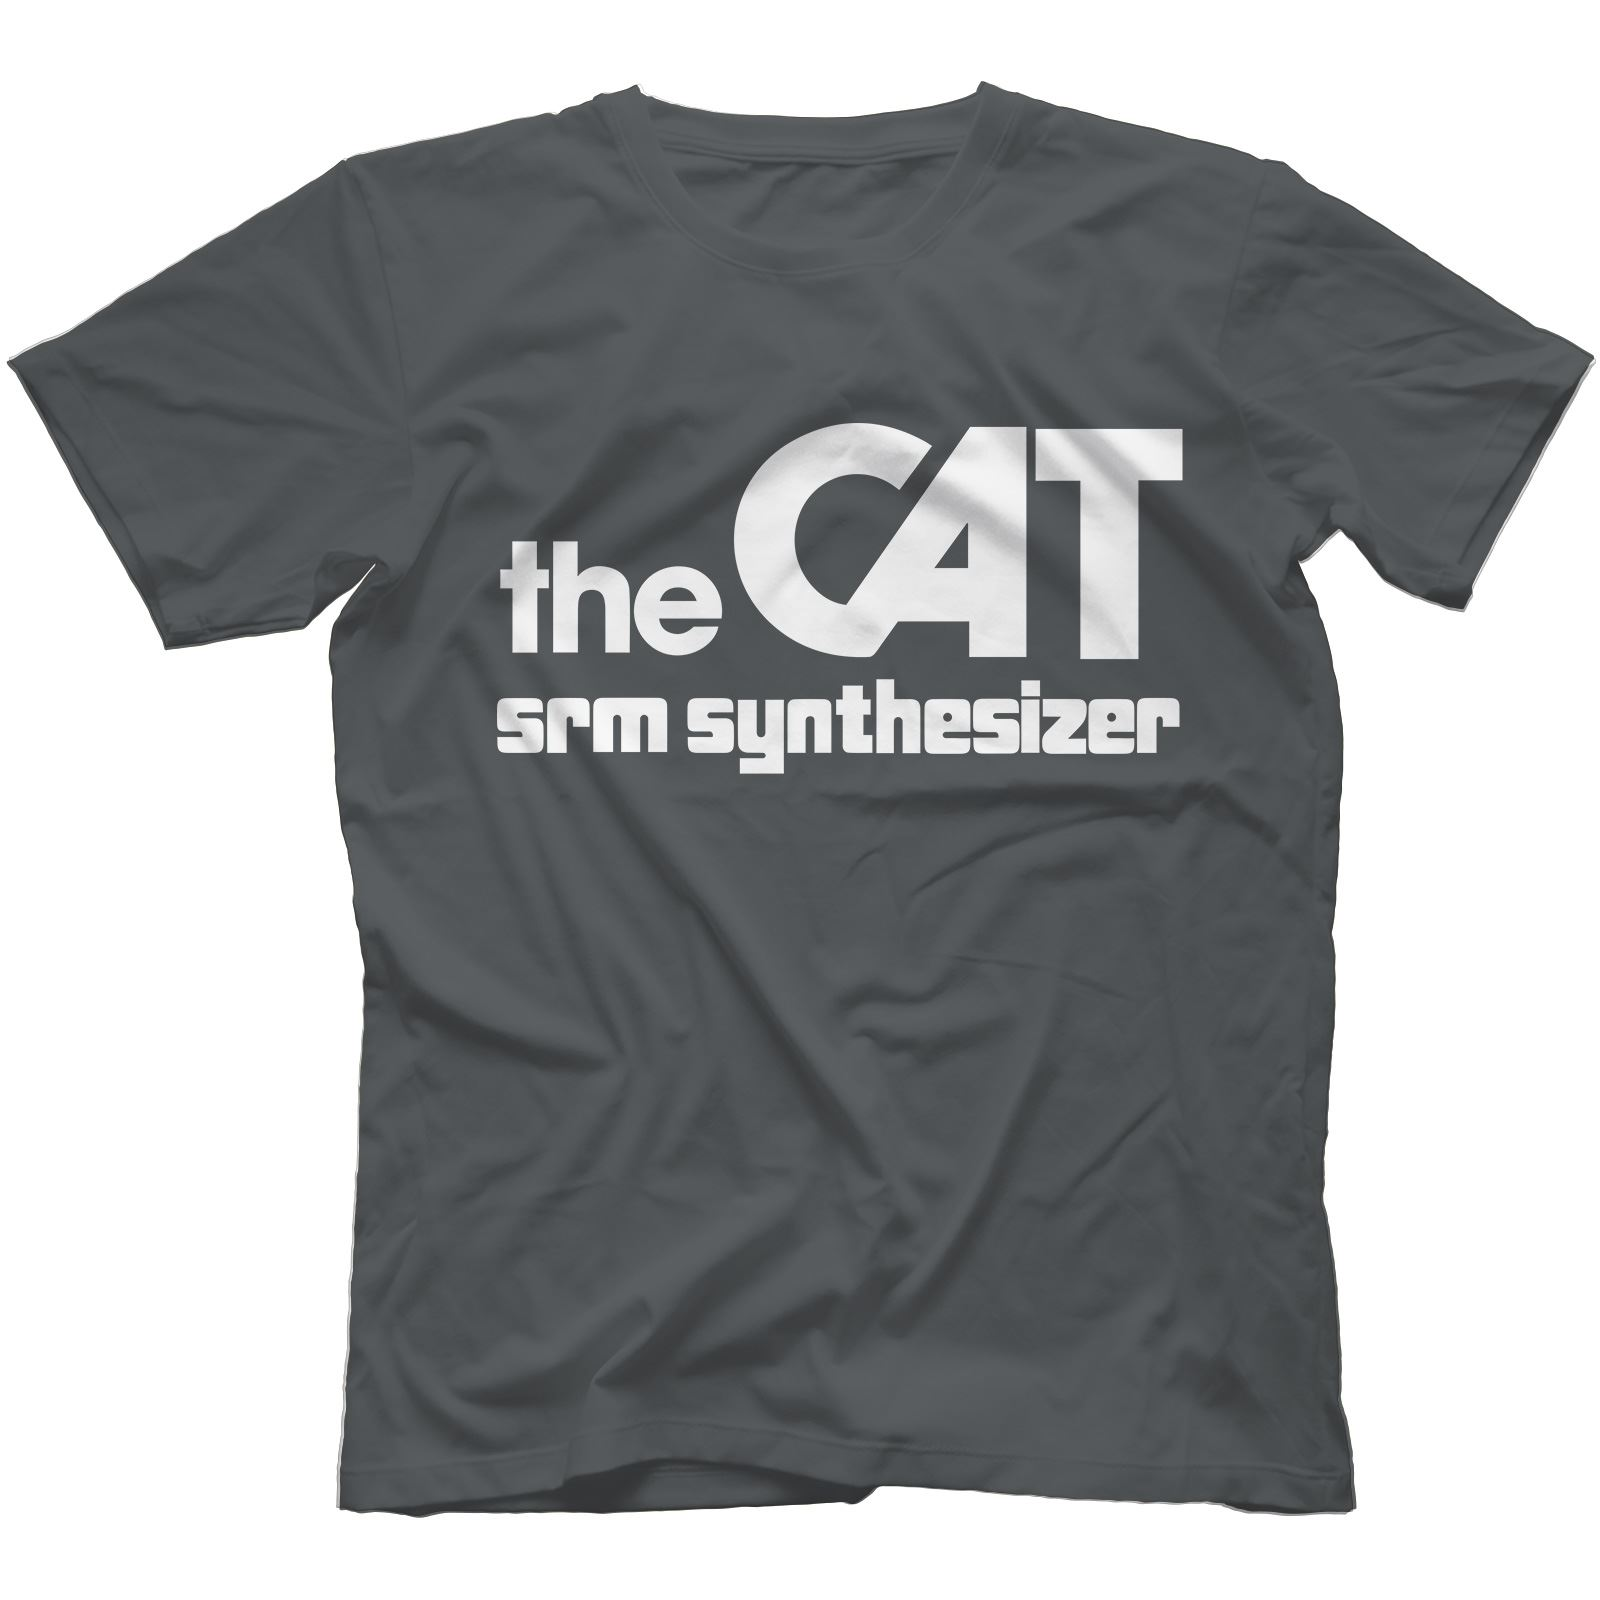 The-Cat-SRM-Synthesiser-T-Shirt-100-Cotton-Retro-Analog-Arp-Odyssey Indexbild 11